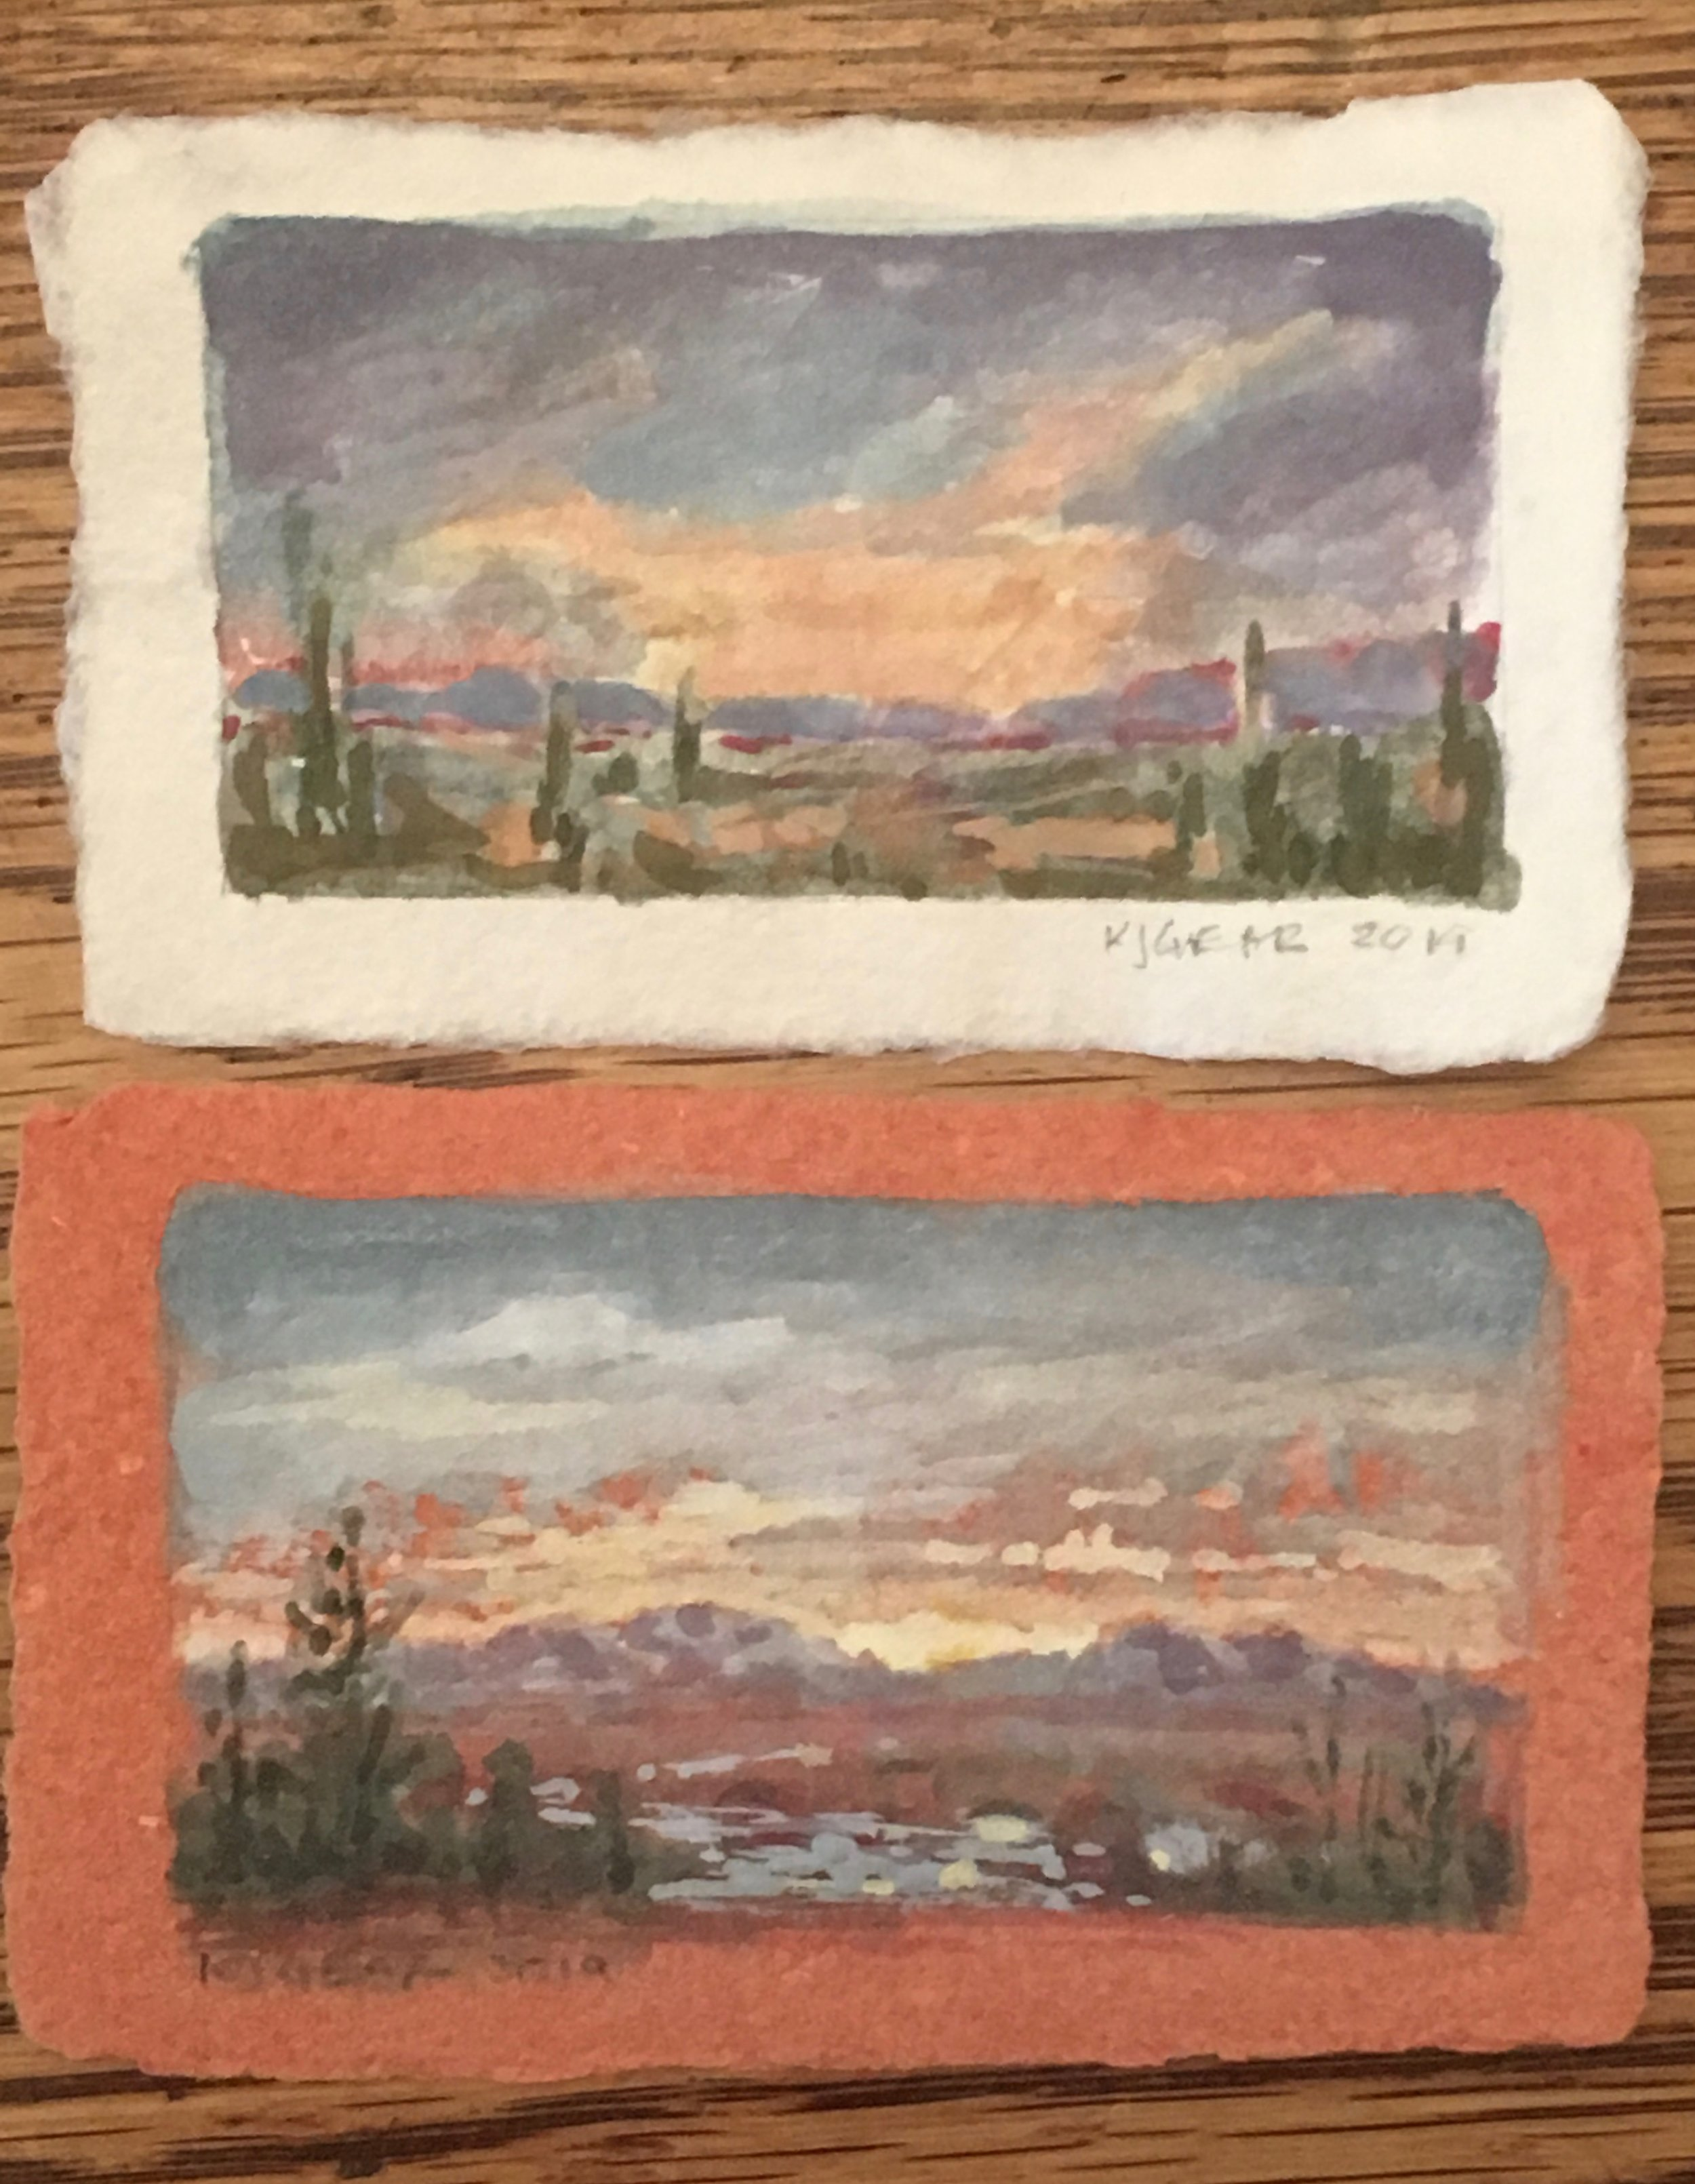 and k jodi gear used my papers for these paintings  out west the sky is bigger than here in the great northern forest.